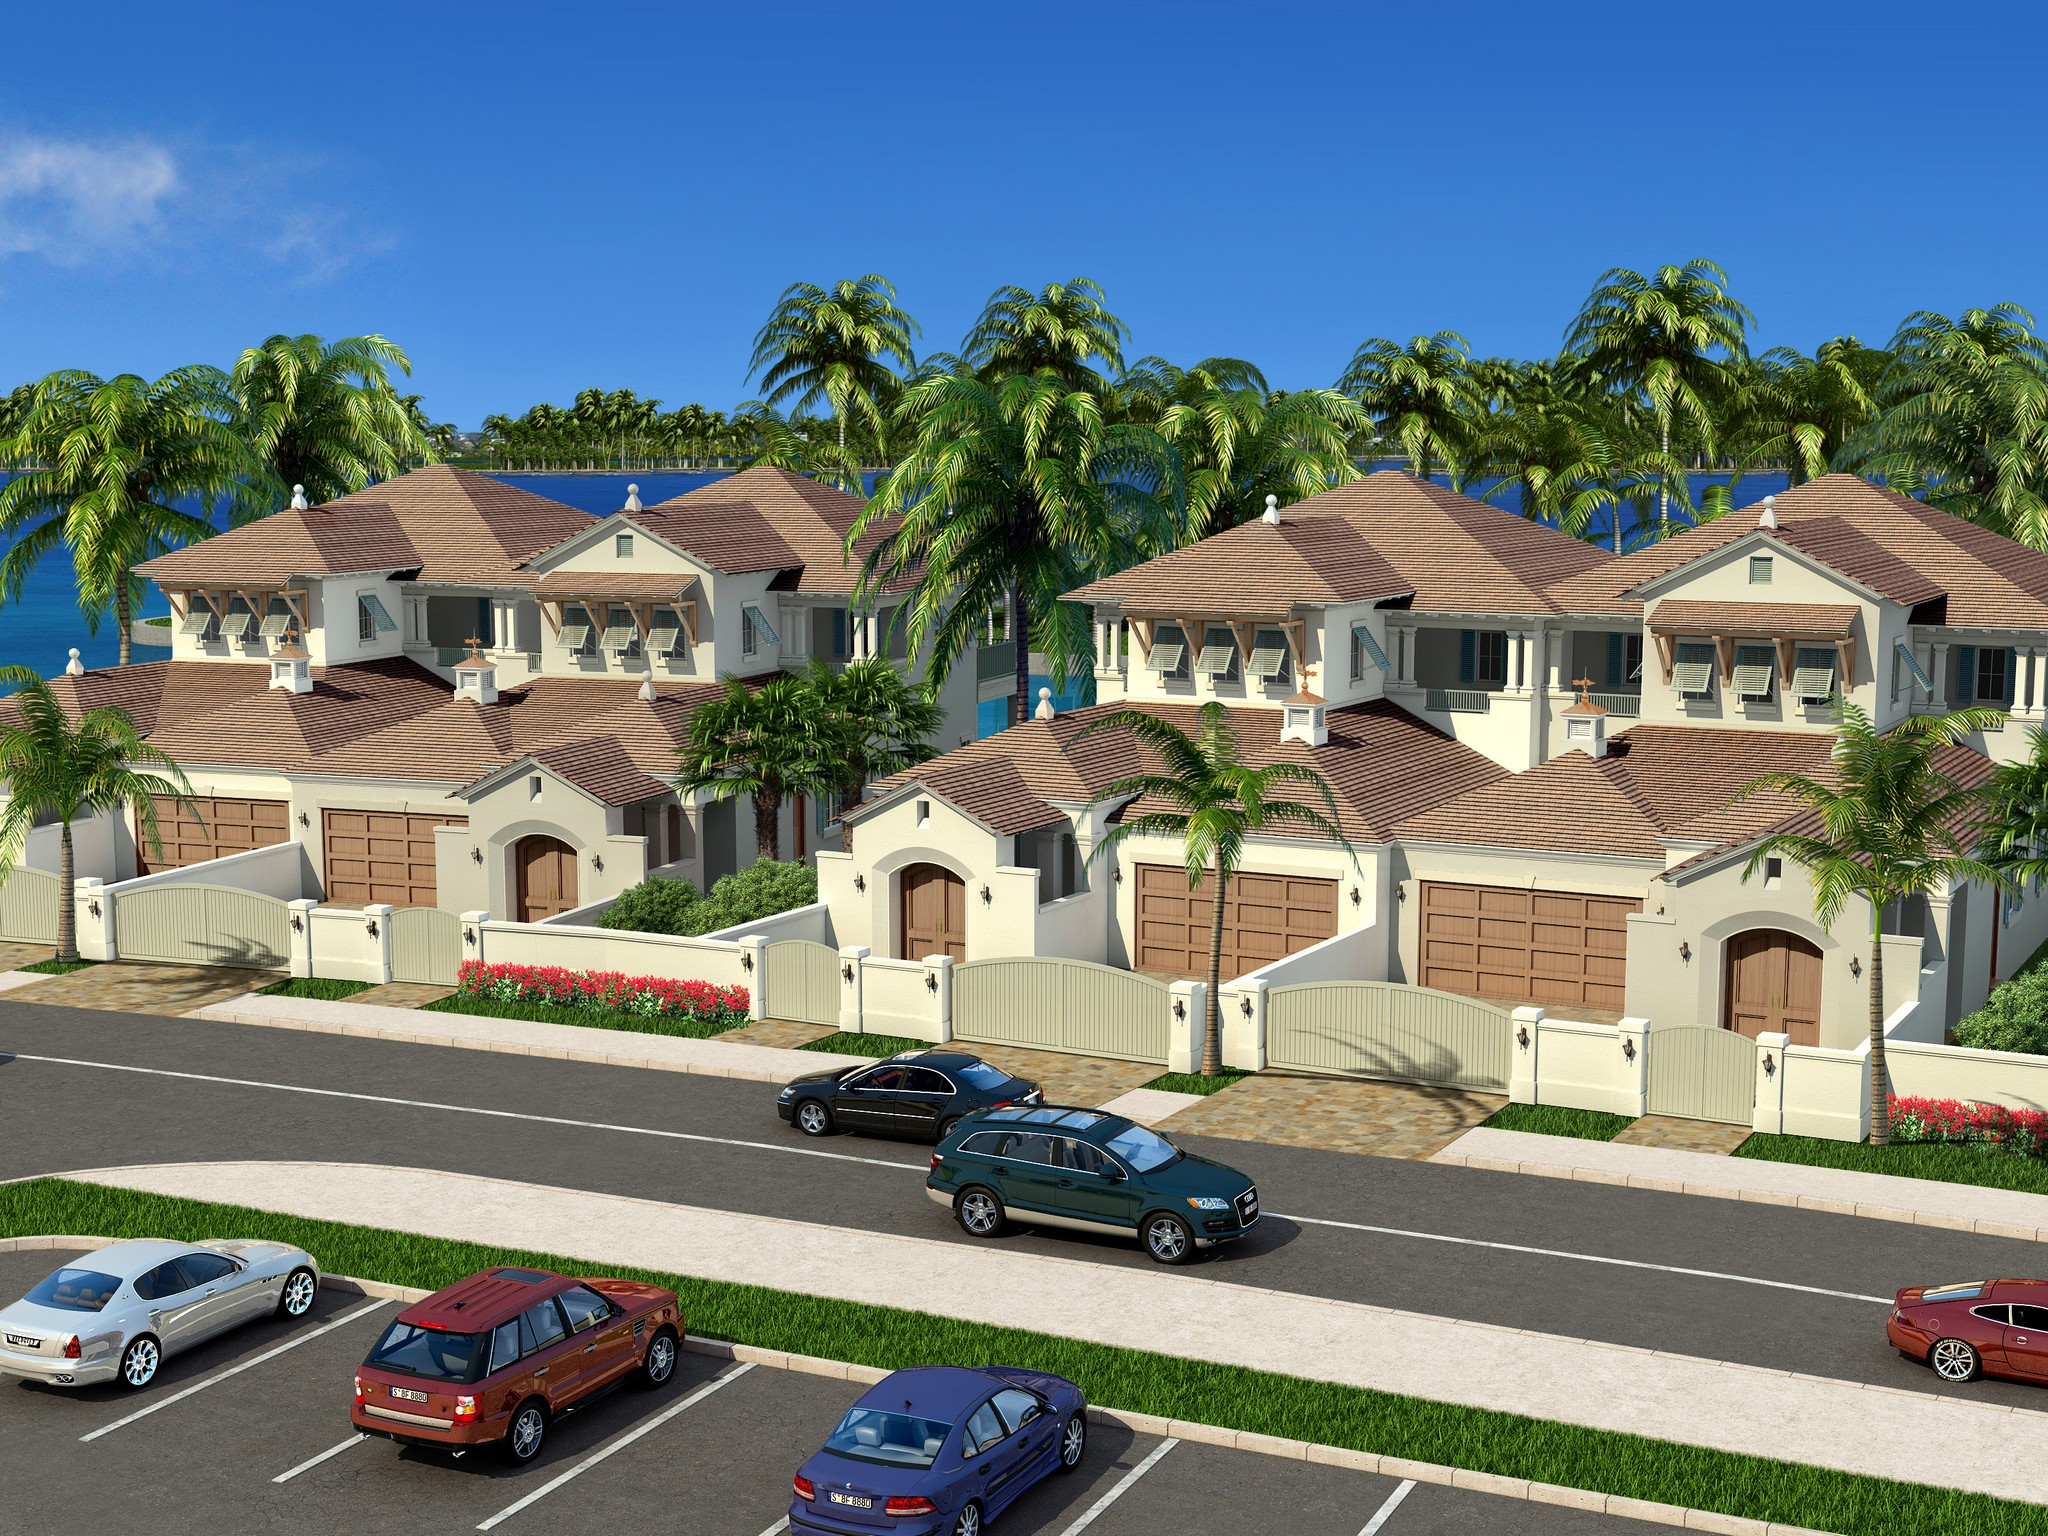 Moradia em banda para Venda às Luxurious Riverfront Townhome on Royal Palm Pointe 21 Royal Palm Pointe #2 Vero Beach, Florida 32960 Estados Unidos